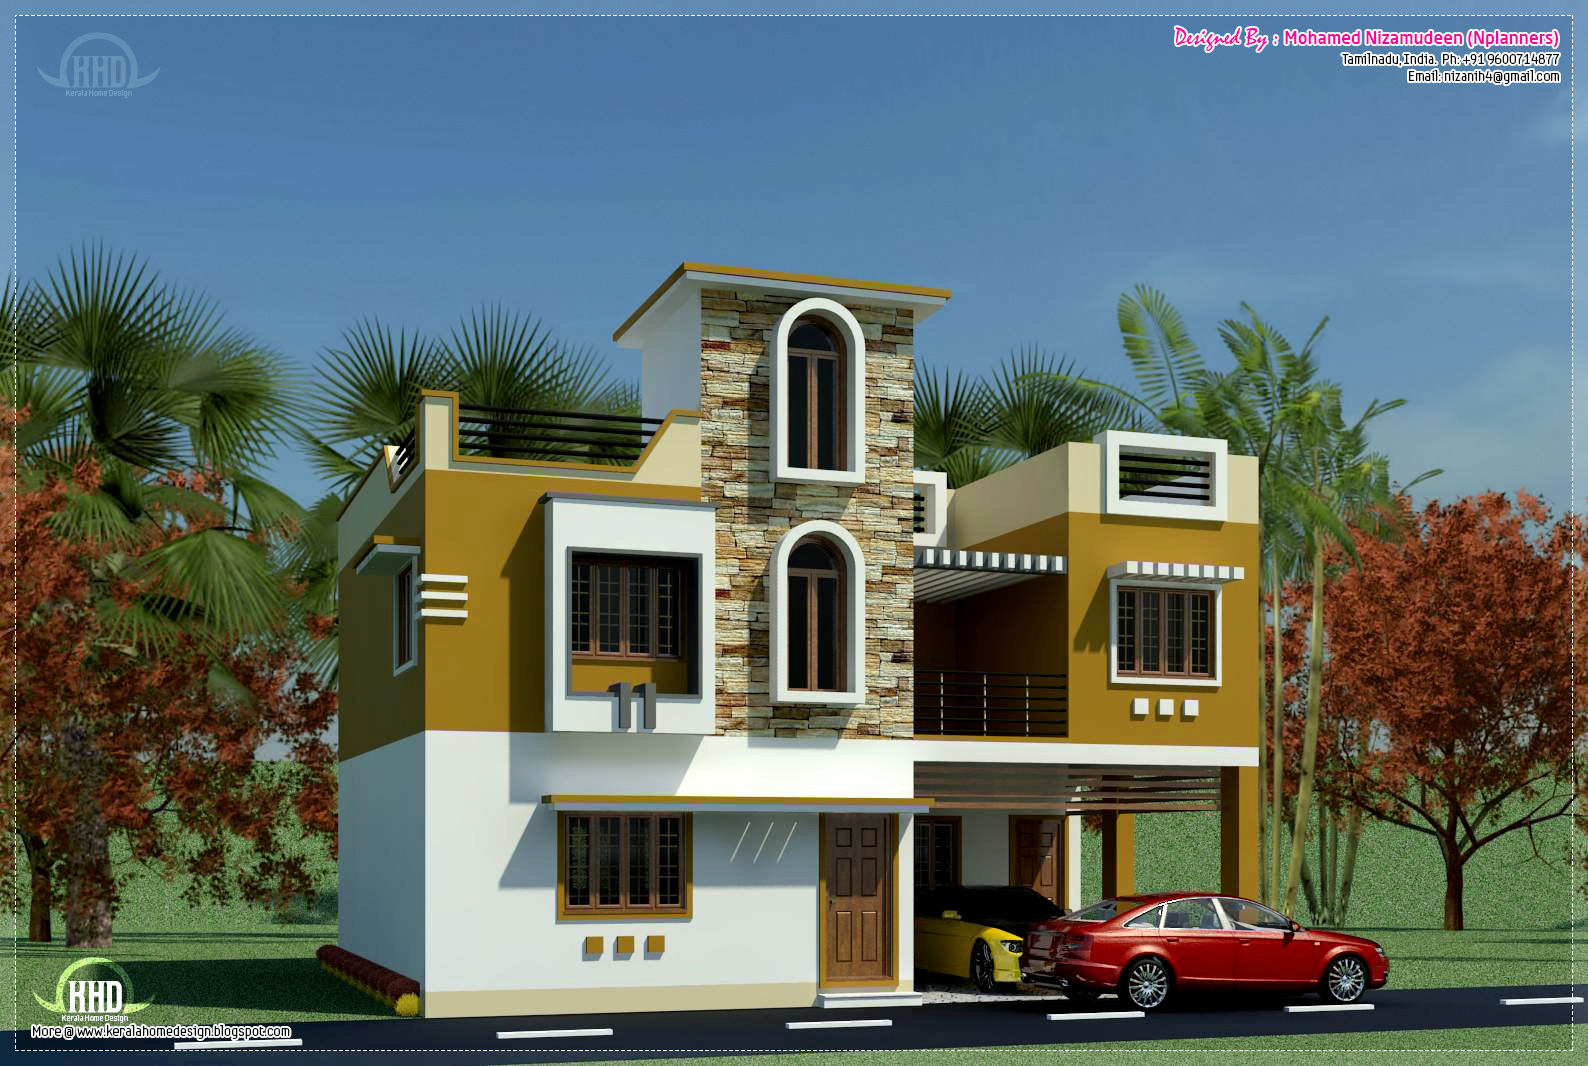 Siddu buzz online kerala home design Indian house front design photo